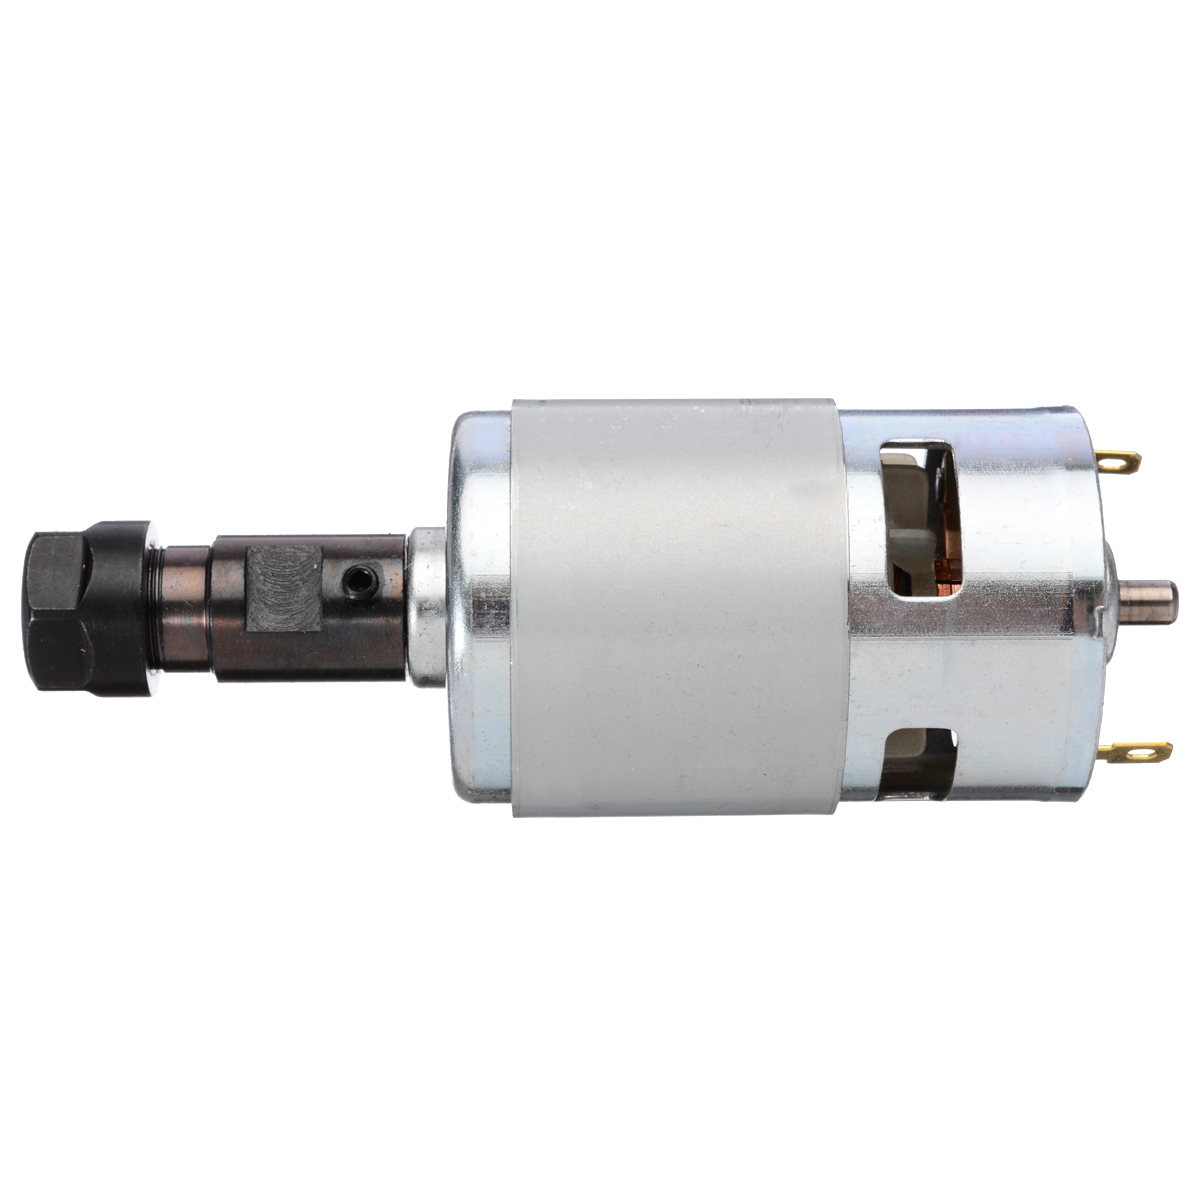 1Pcs 775 DC Motor 12-36V with ER11 Spindle Replacement Part For CNC Router Machine High Quality1Pcs 775 DC Motor 12-36V with ER11 Spindle Replacement Part For CNC Router Machine High Quality